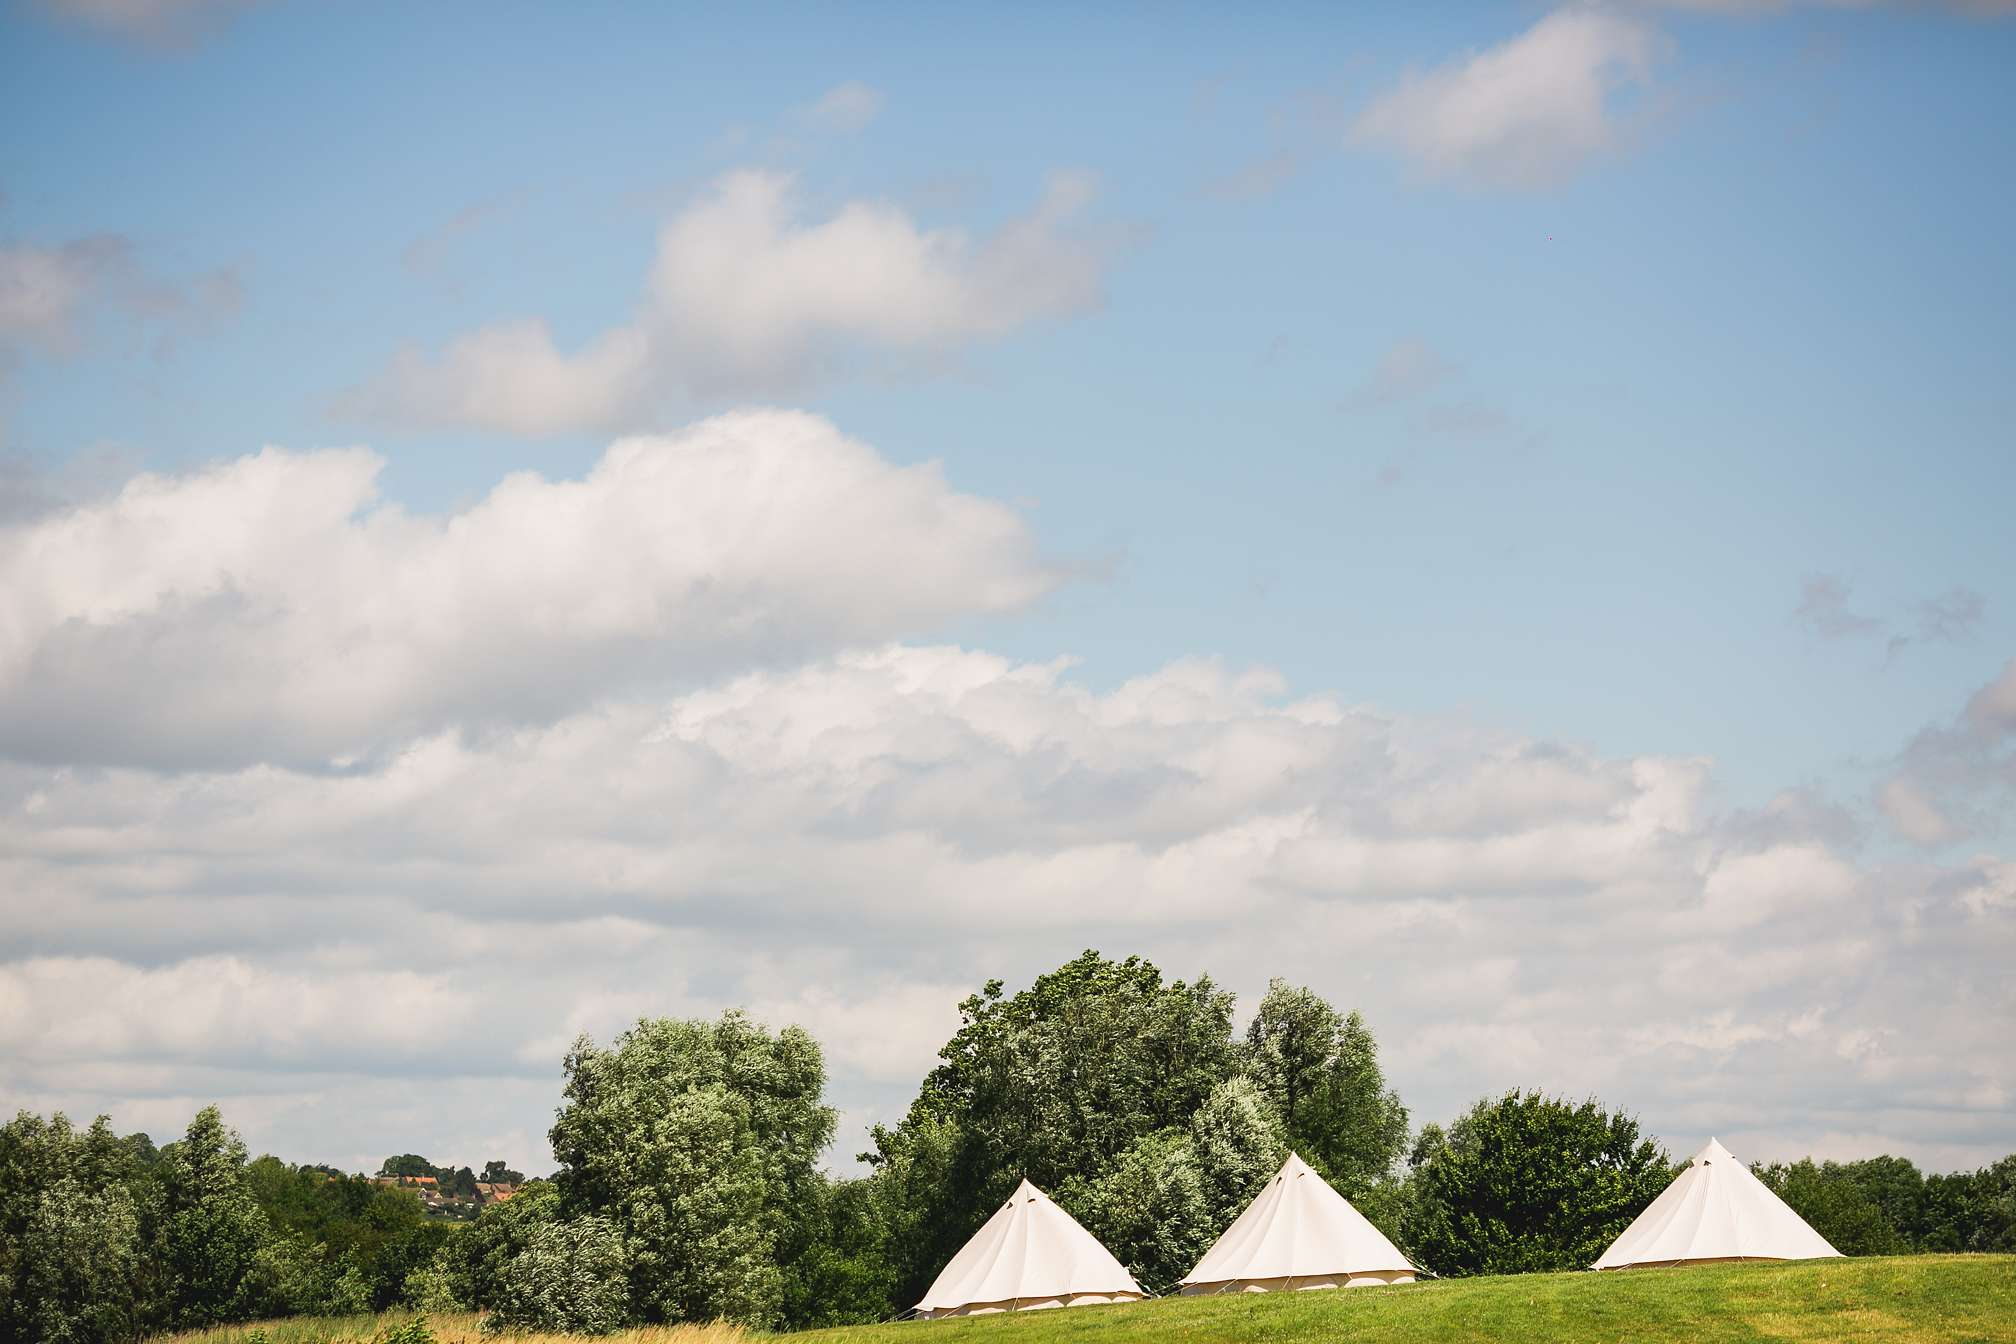 Tipi's at Grendon Lakes